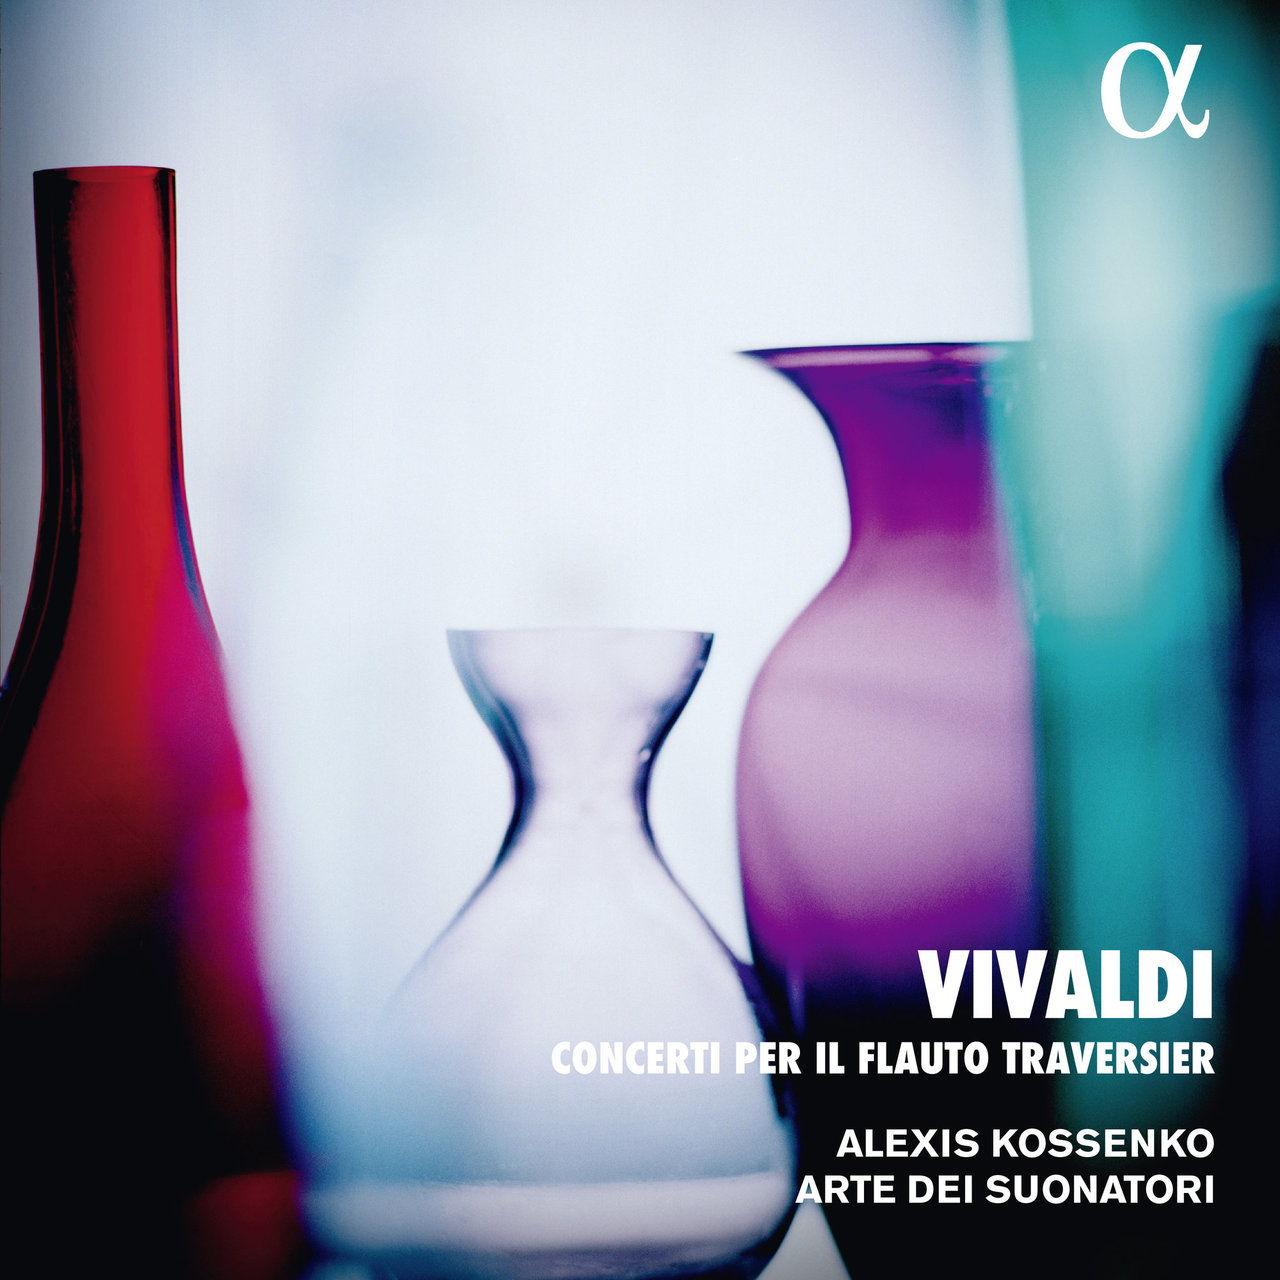 Vivaldi: Concerti per il flauto traversier (Alpha Collection)